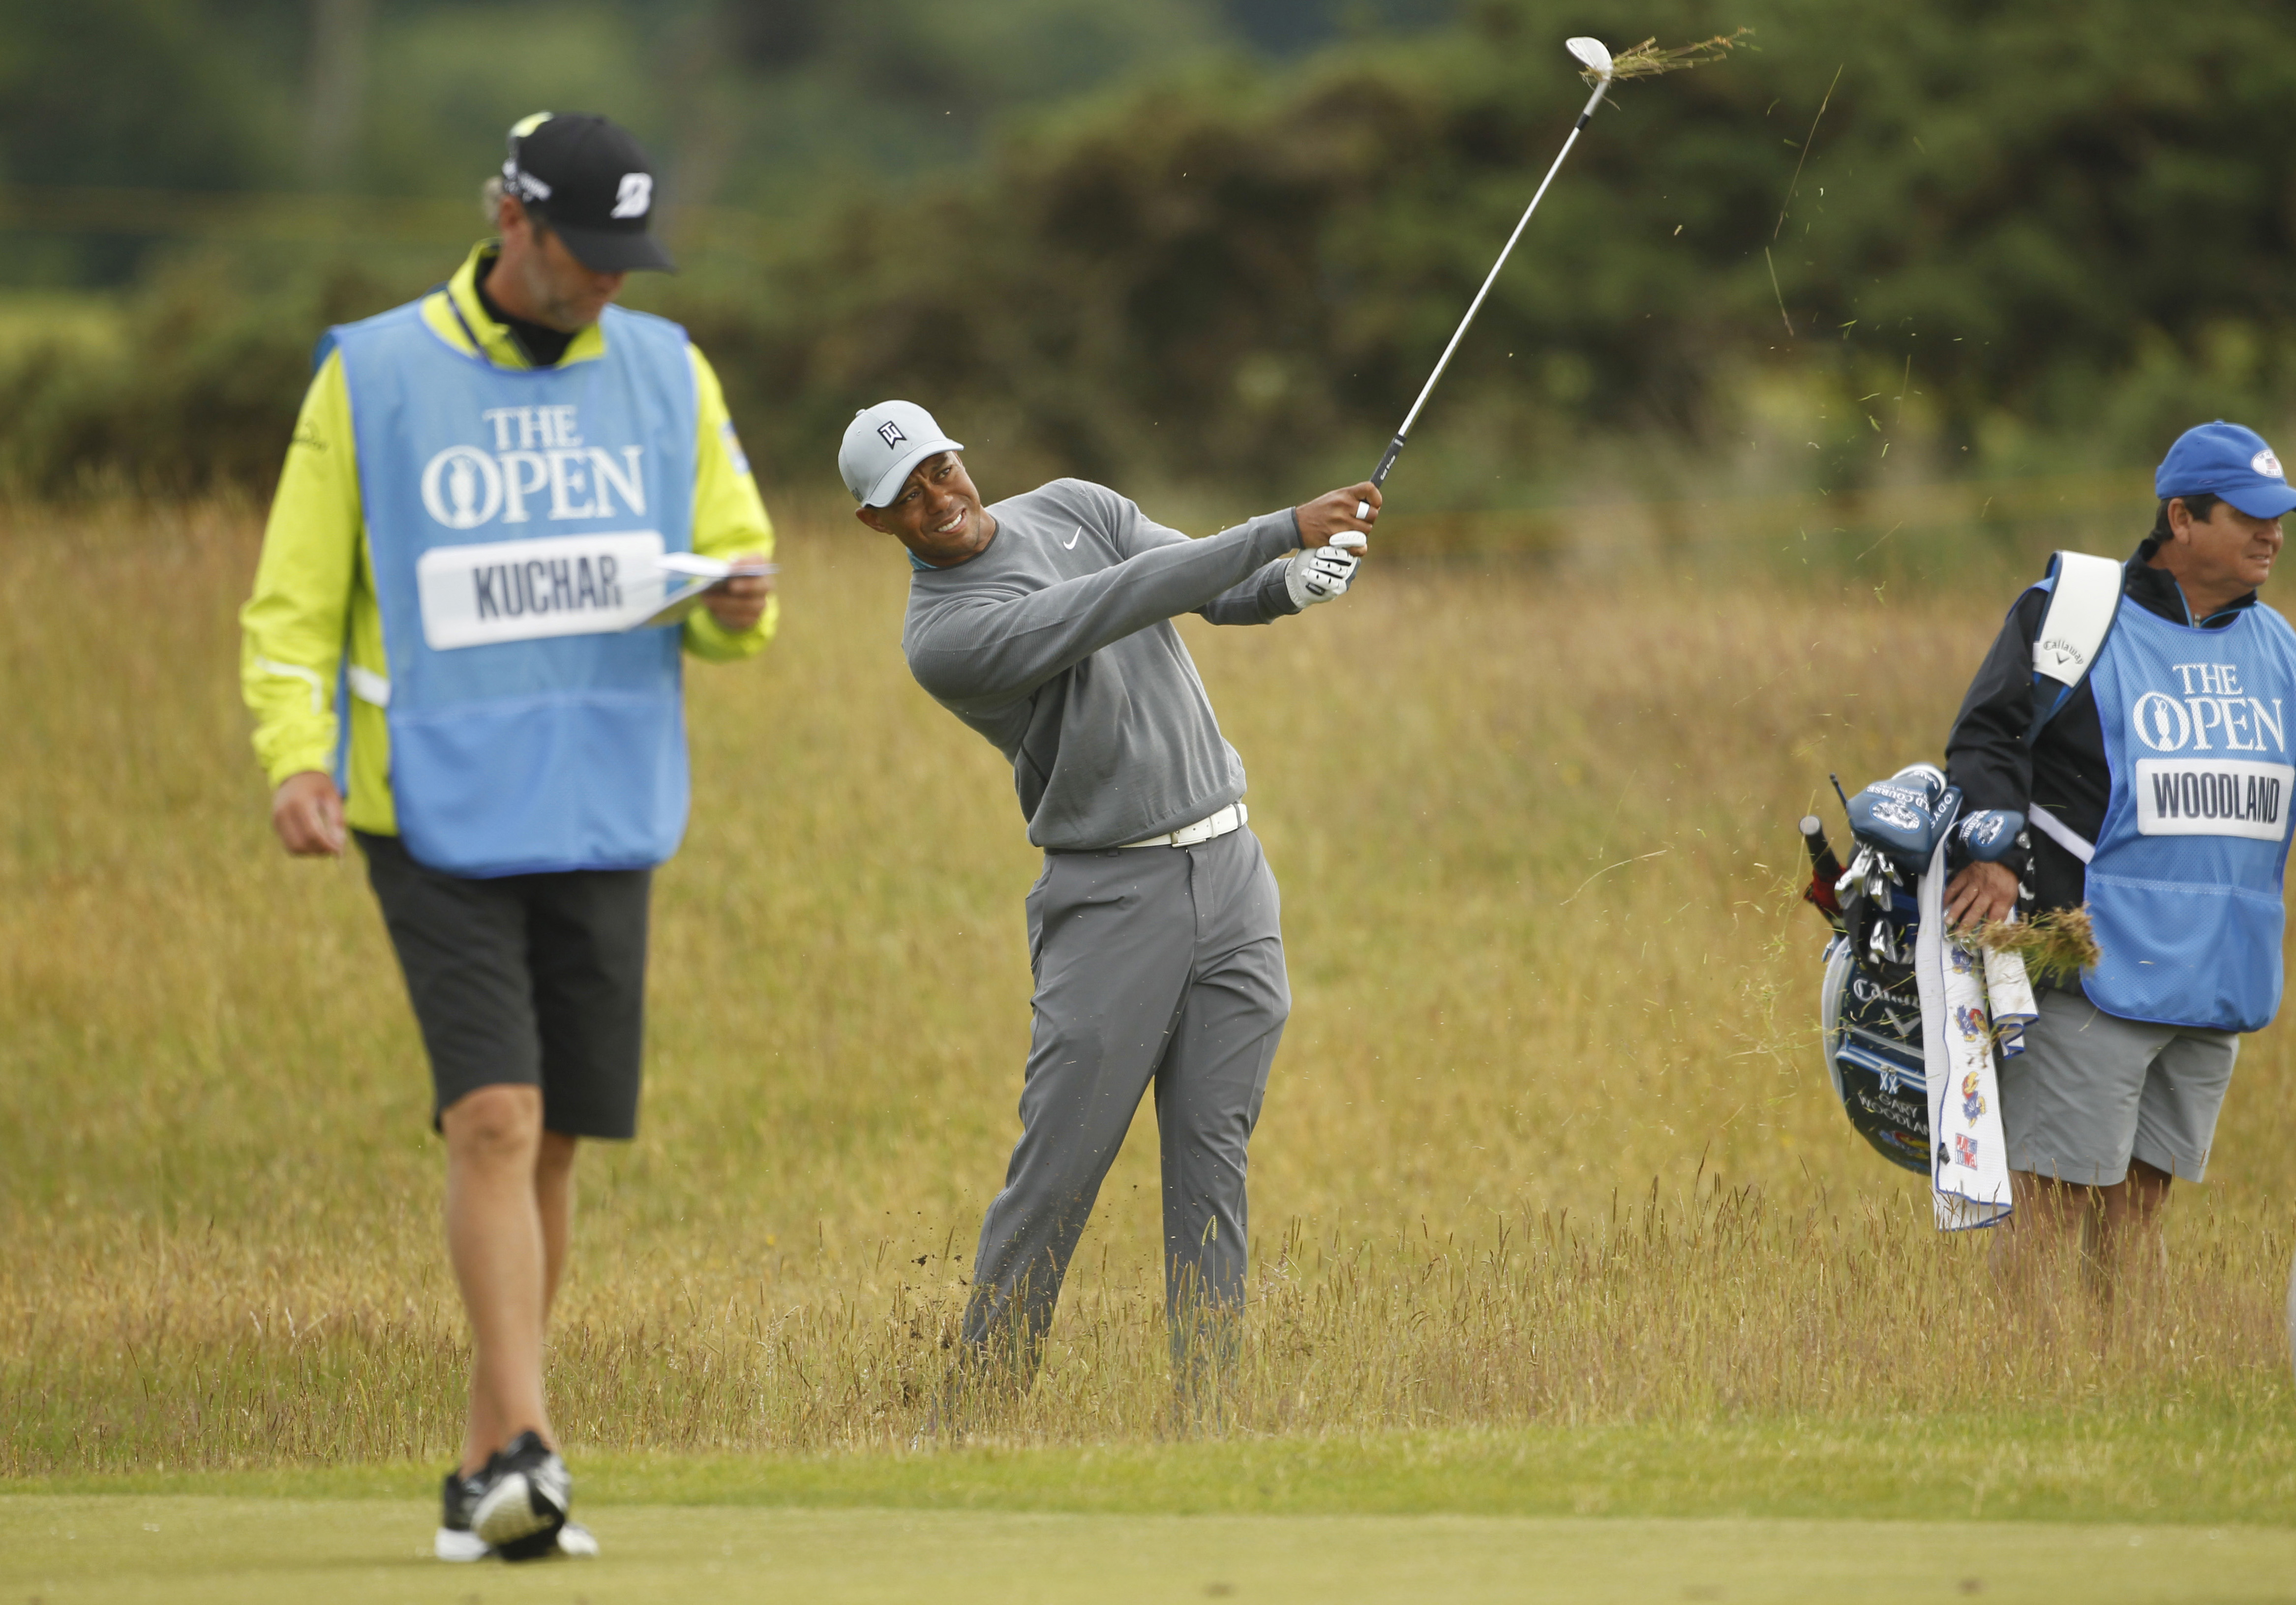 Tiger Woods from the U.S. plays from the rough on the 7th hole during a practice round at St. Andrews Golf Club prior to the start of the British Open Golf Championship, in St. Andrews, Scotland, Monday, July 13, 2015. (AP Photo/Peter Morrison)